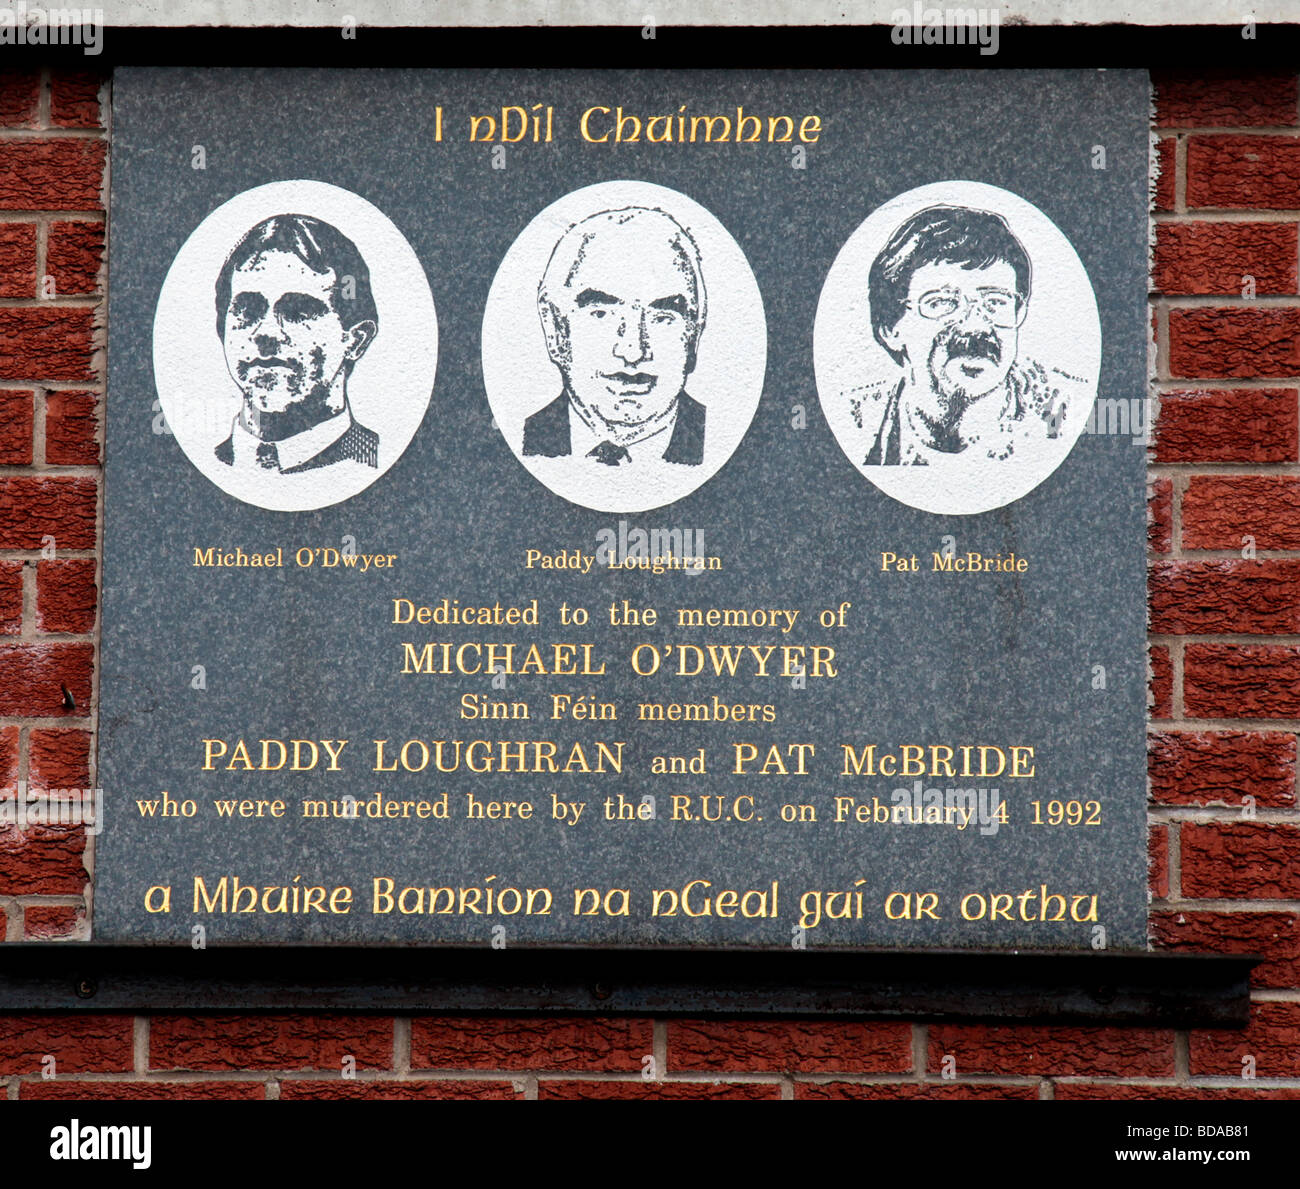 Plaque commemorating Michael O'Dwyer, Paddy Loughran and Pat McBride, three Sinn Fein members killed by an RUC - Stock Image